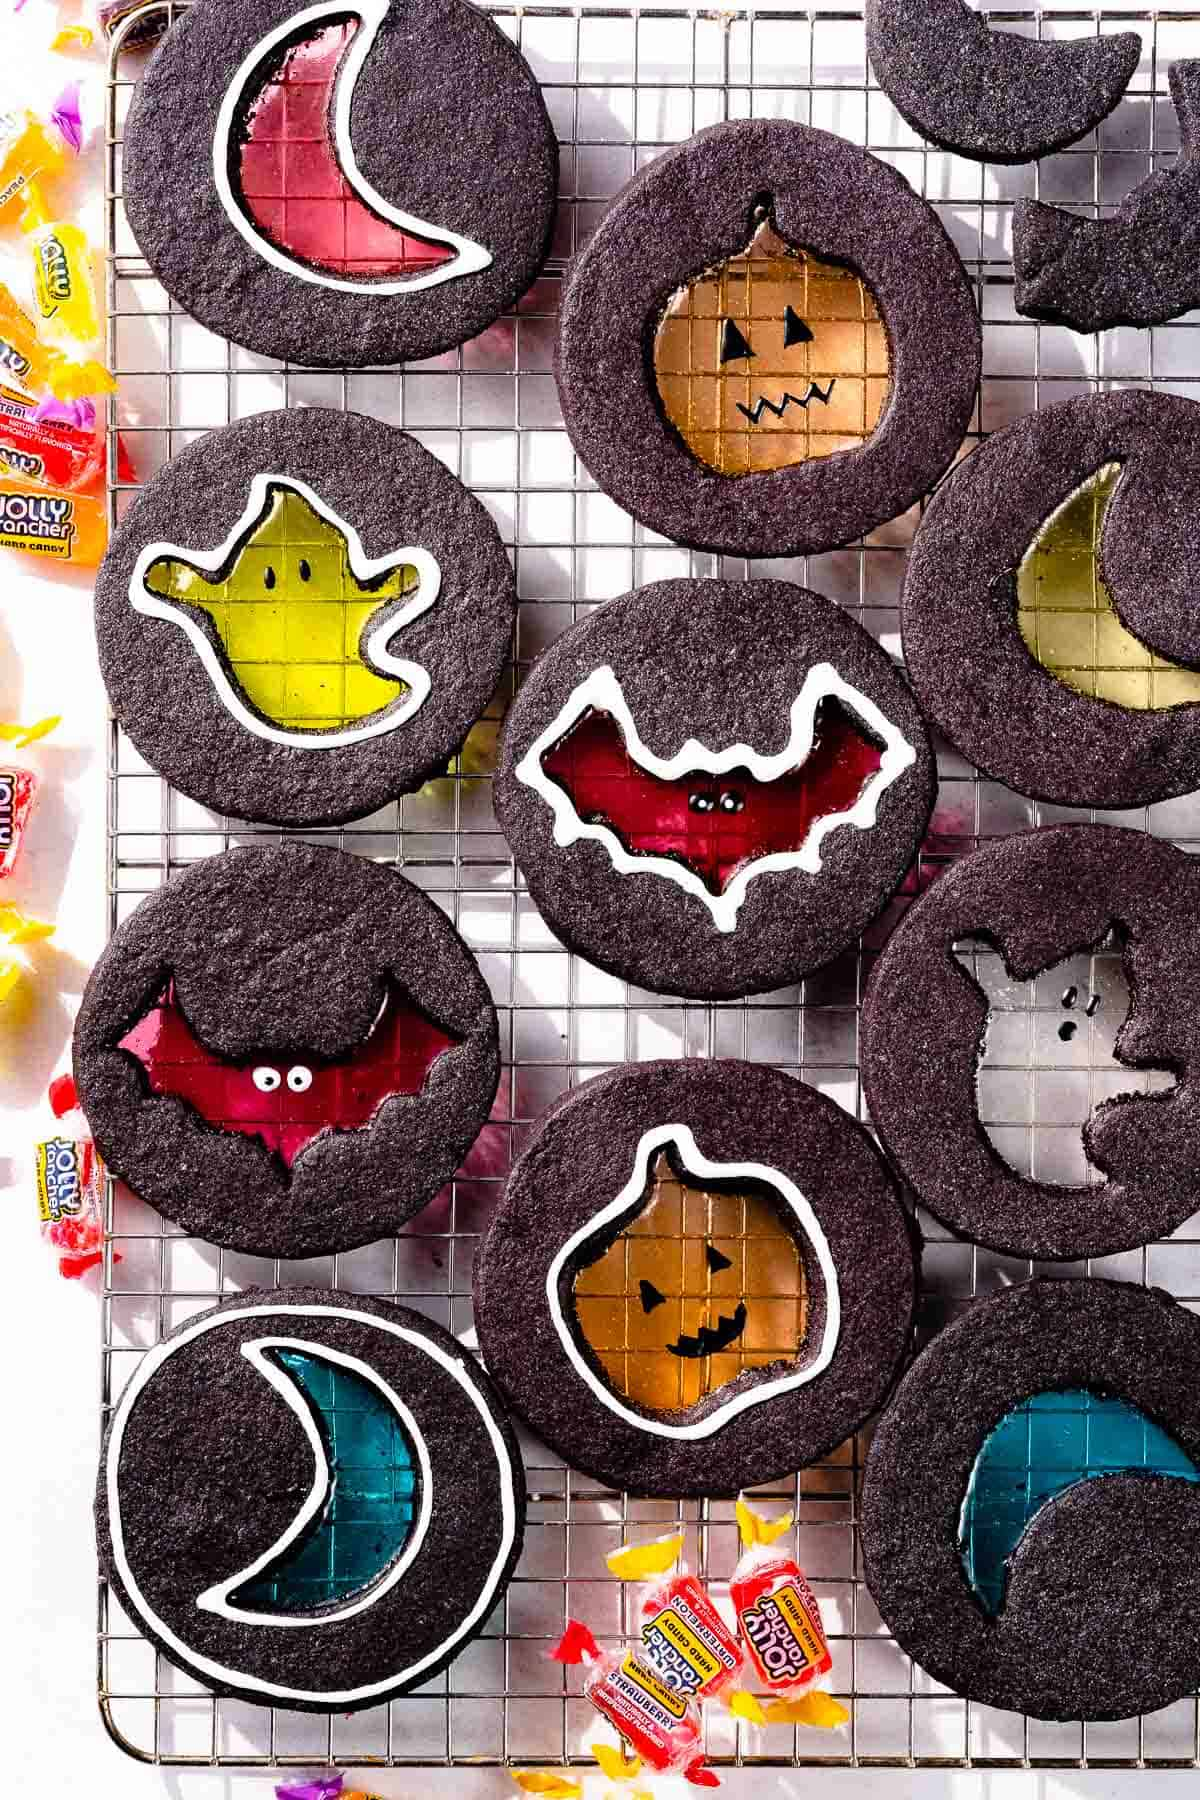 Halloween windowpane cookies on cooling rack with candies on the side